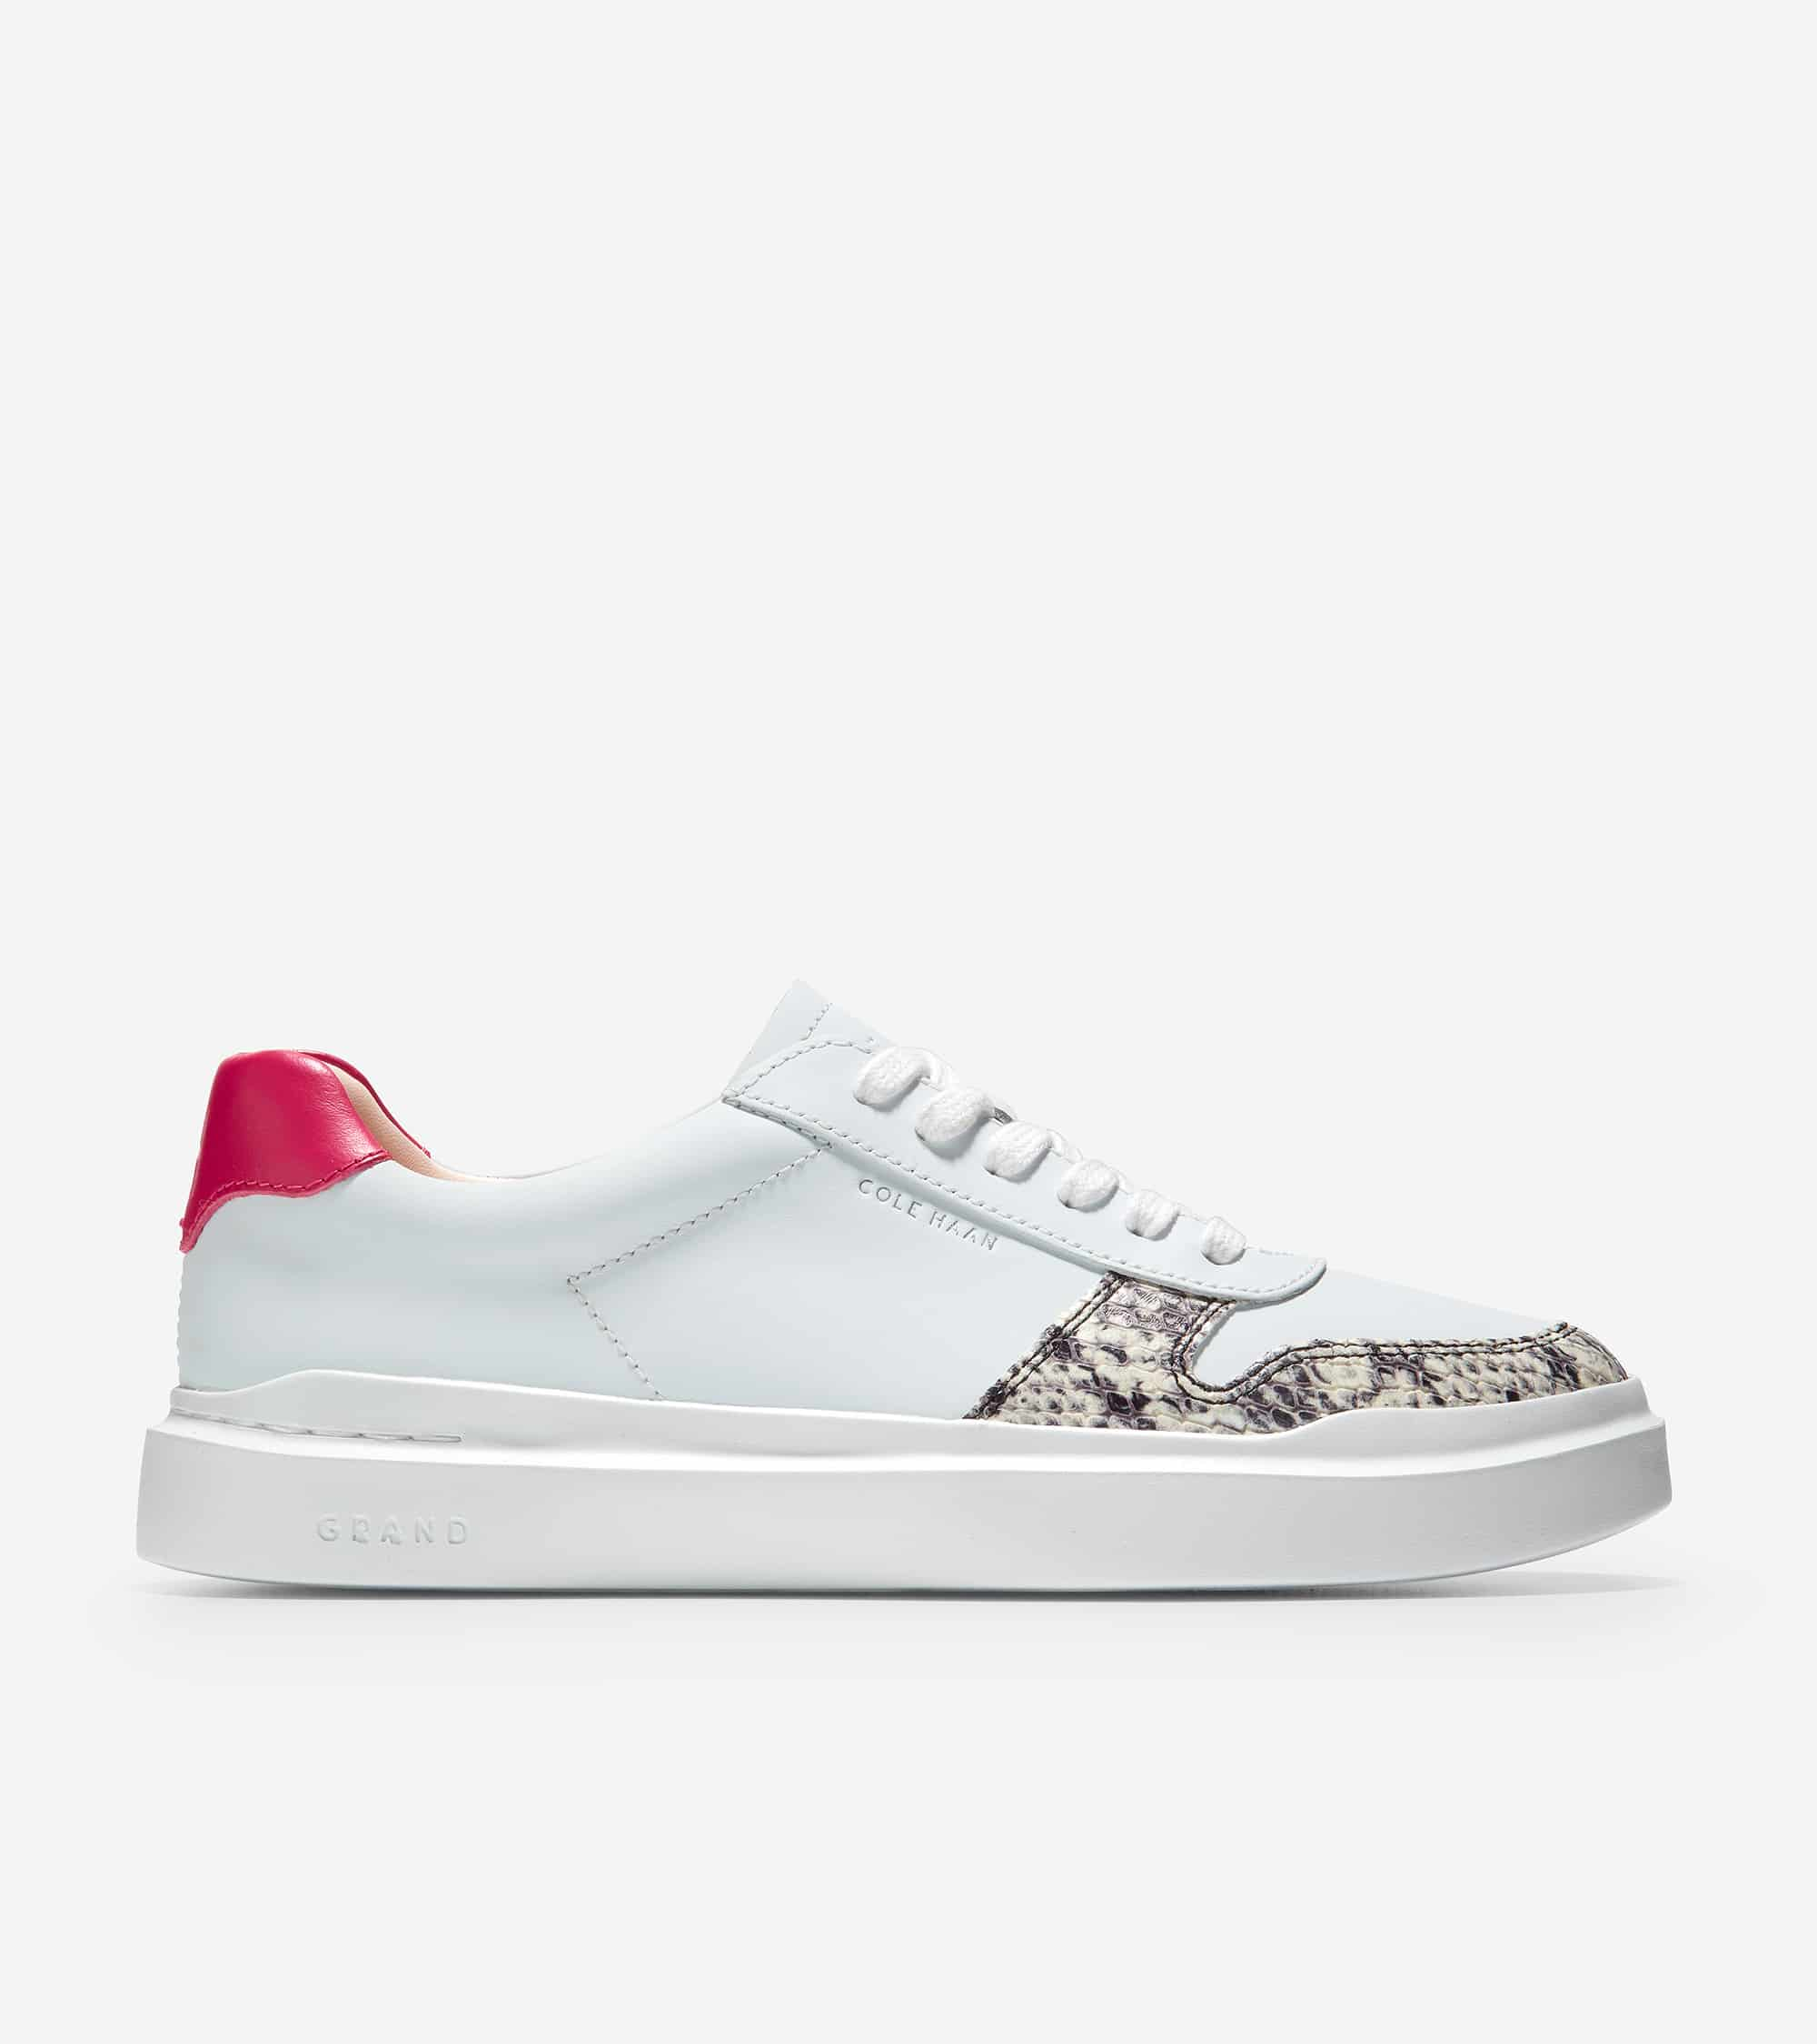 GRANDPRO RALLY COURT SNEAKER OPT WHITE/ COROLLA #3 NATURAL PRINT/ IVORY & BLACK P PLUS SUEDE/ CLAY PINK/ LOVE POTION/ WHT